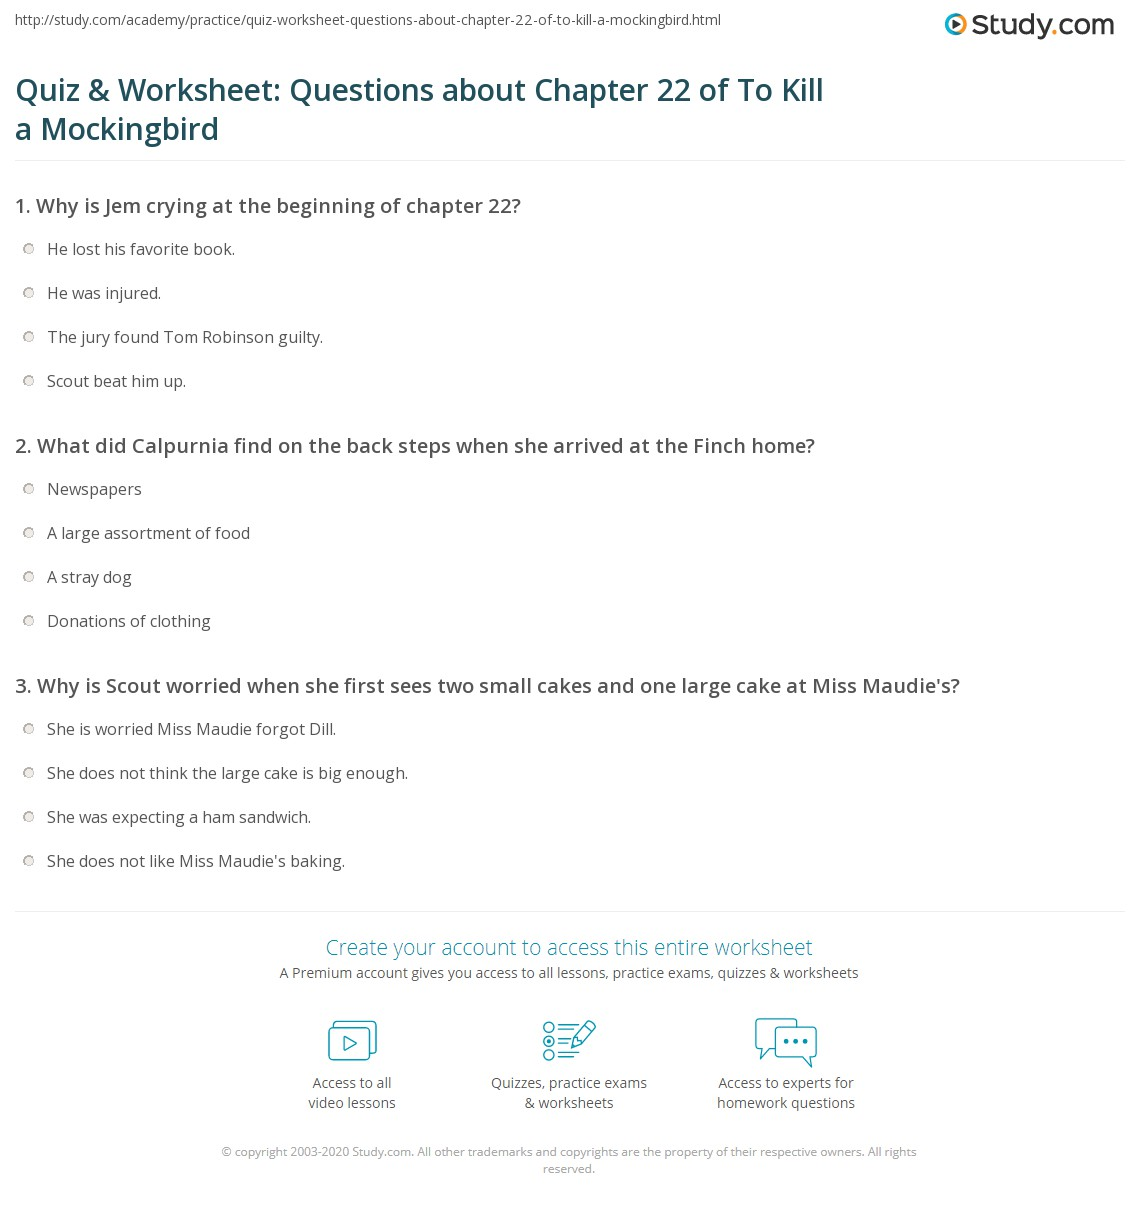 quiz worksheet questions about chapter 22 of to kill a mockingbird. Black Bedroom Furniture Sets. Home Design Ideas